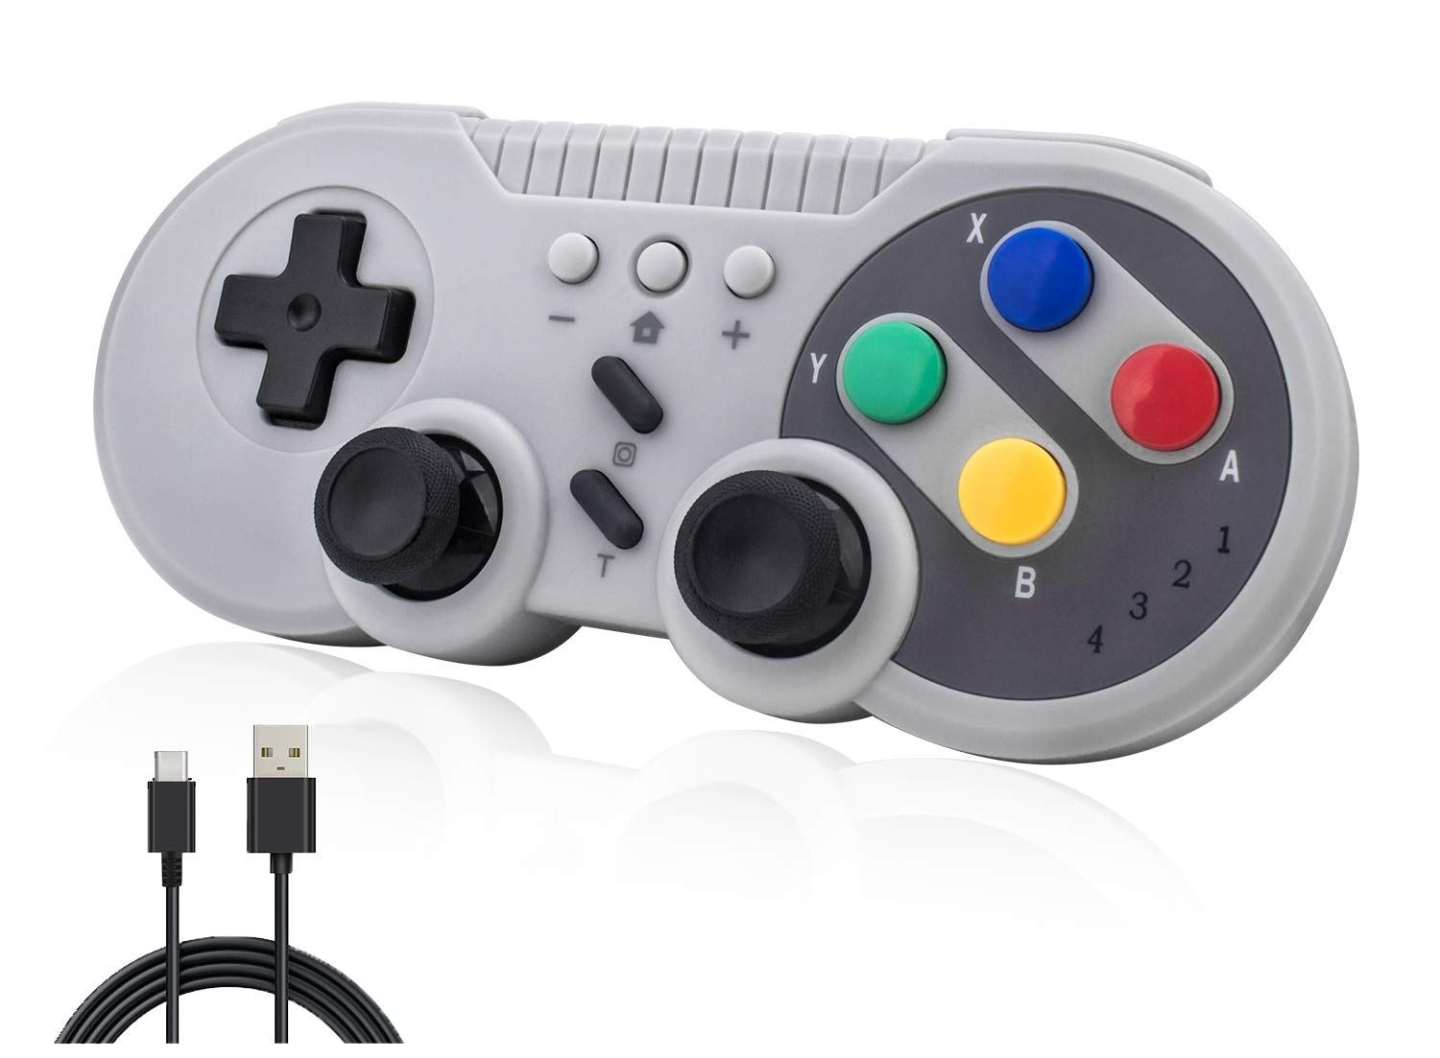 TechKen SNES wireless pro controller for Nintendo Switch, PC and Android